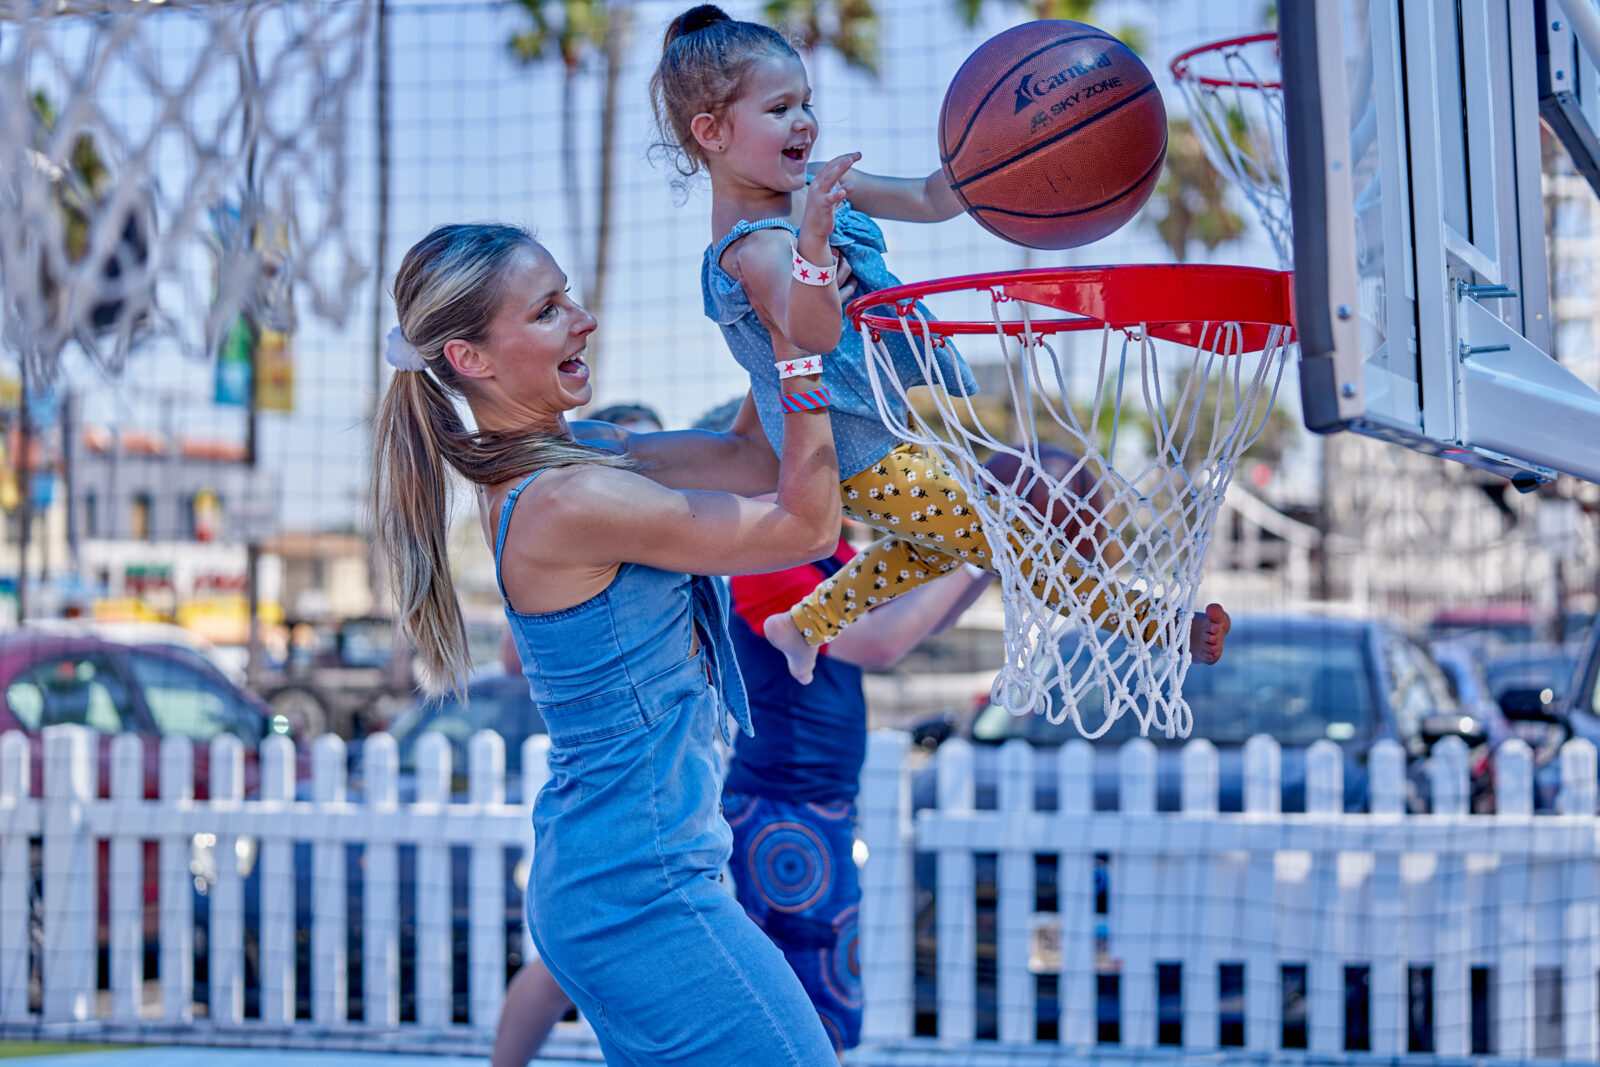 mother and son playing at carnival panorama event planners event